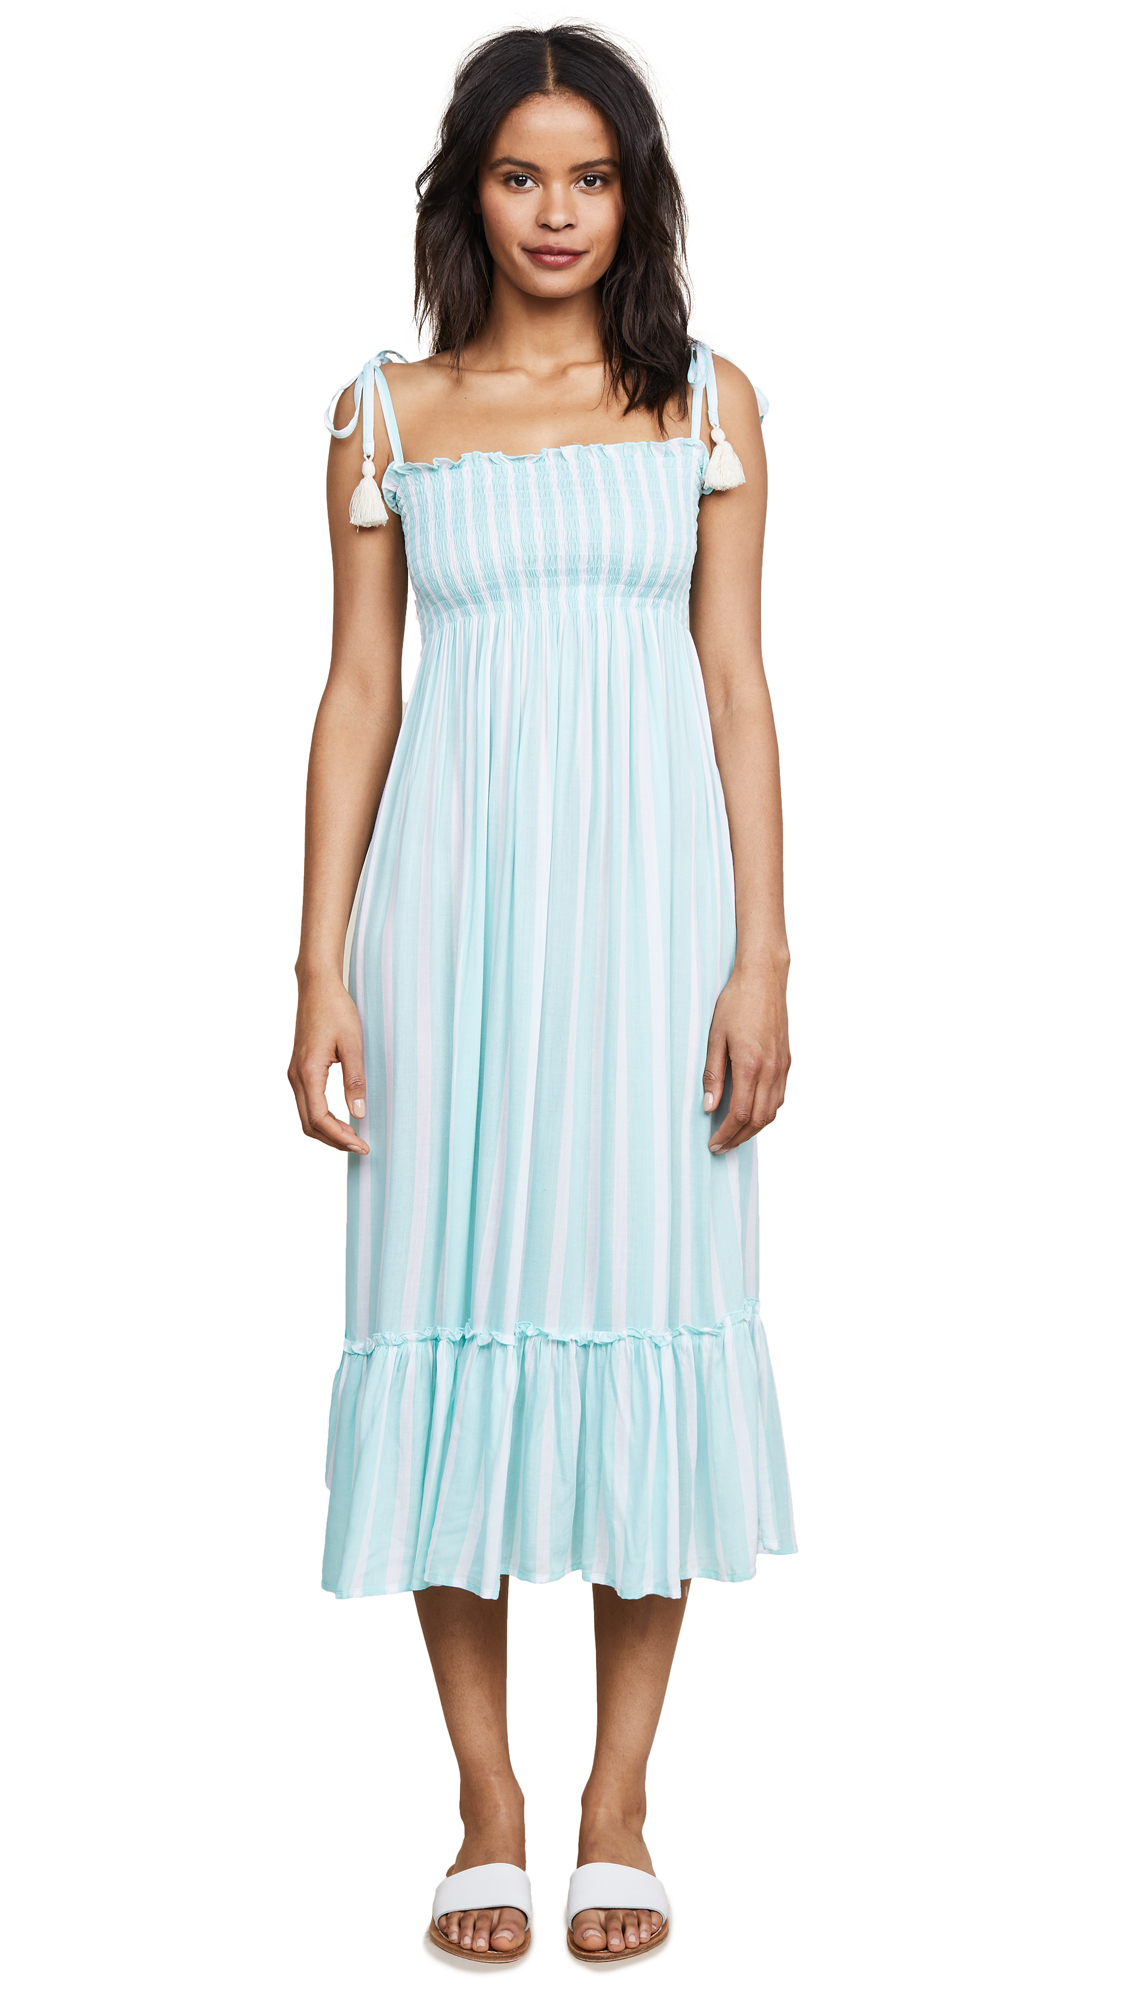 COOL CHANGE Piper Toiny Stripe Midi Dress in Clearwater/White